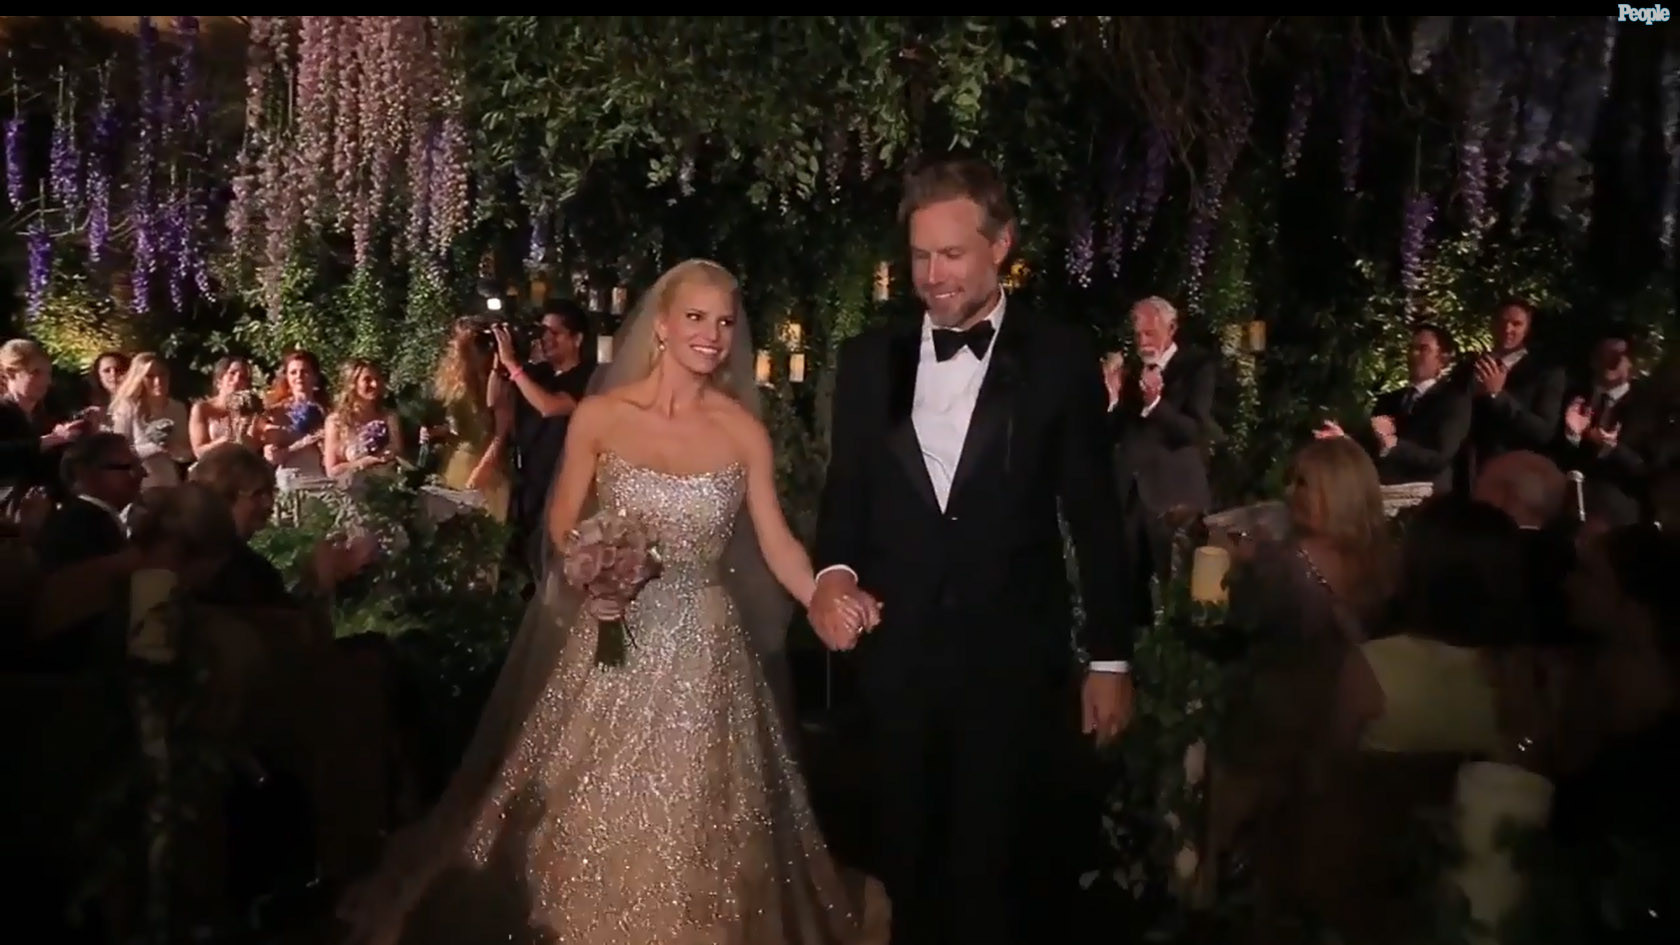 Jessica Simpson\'s wedding video shows off elegant, fun affair